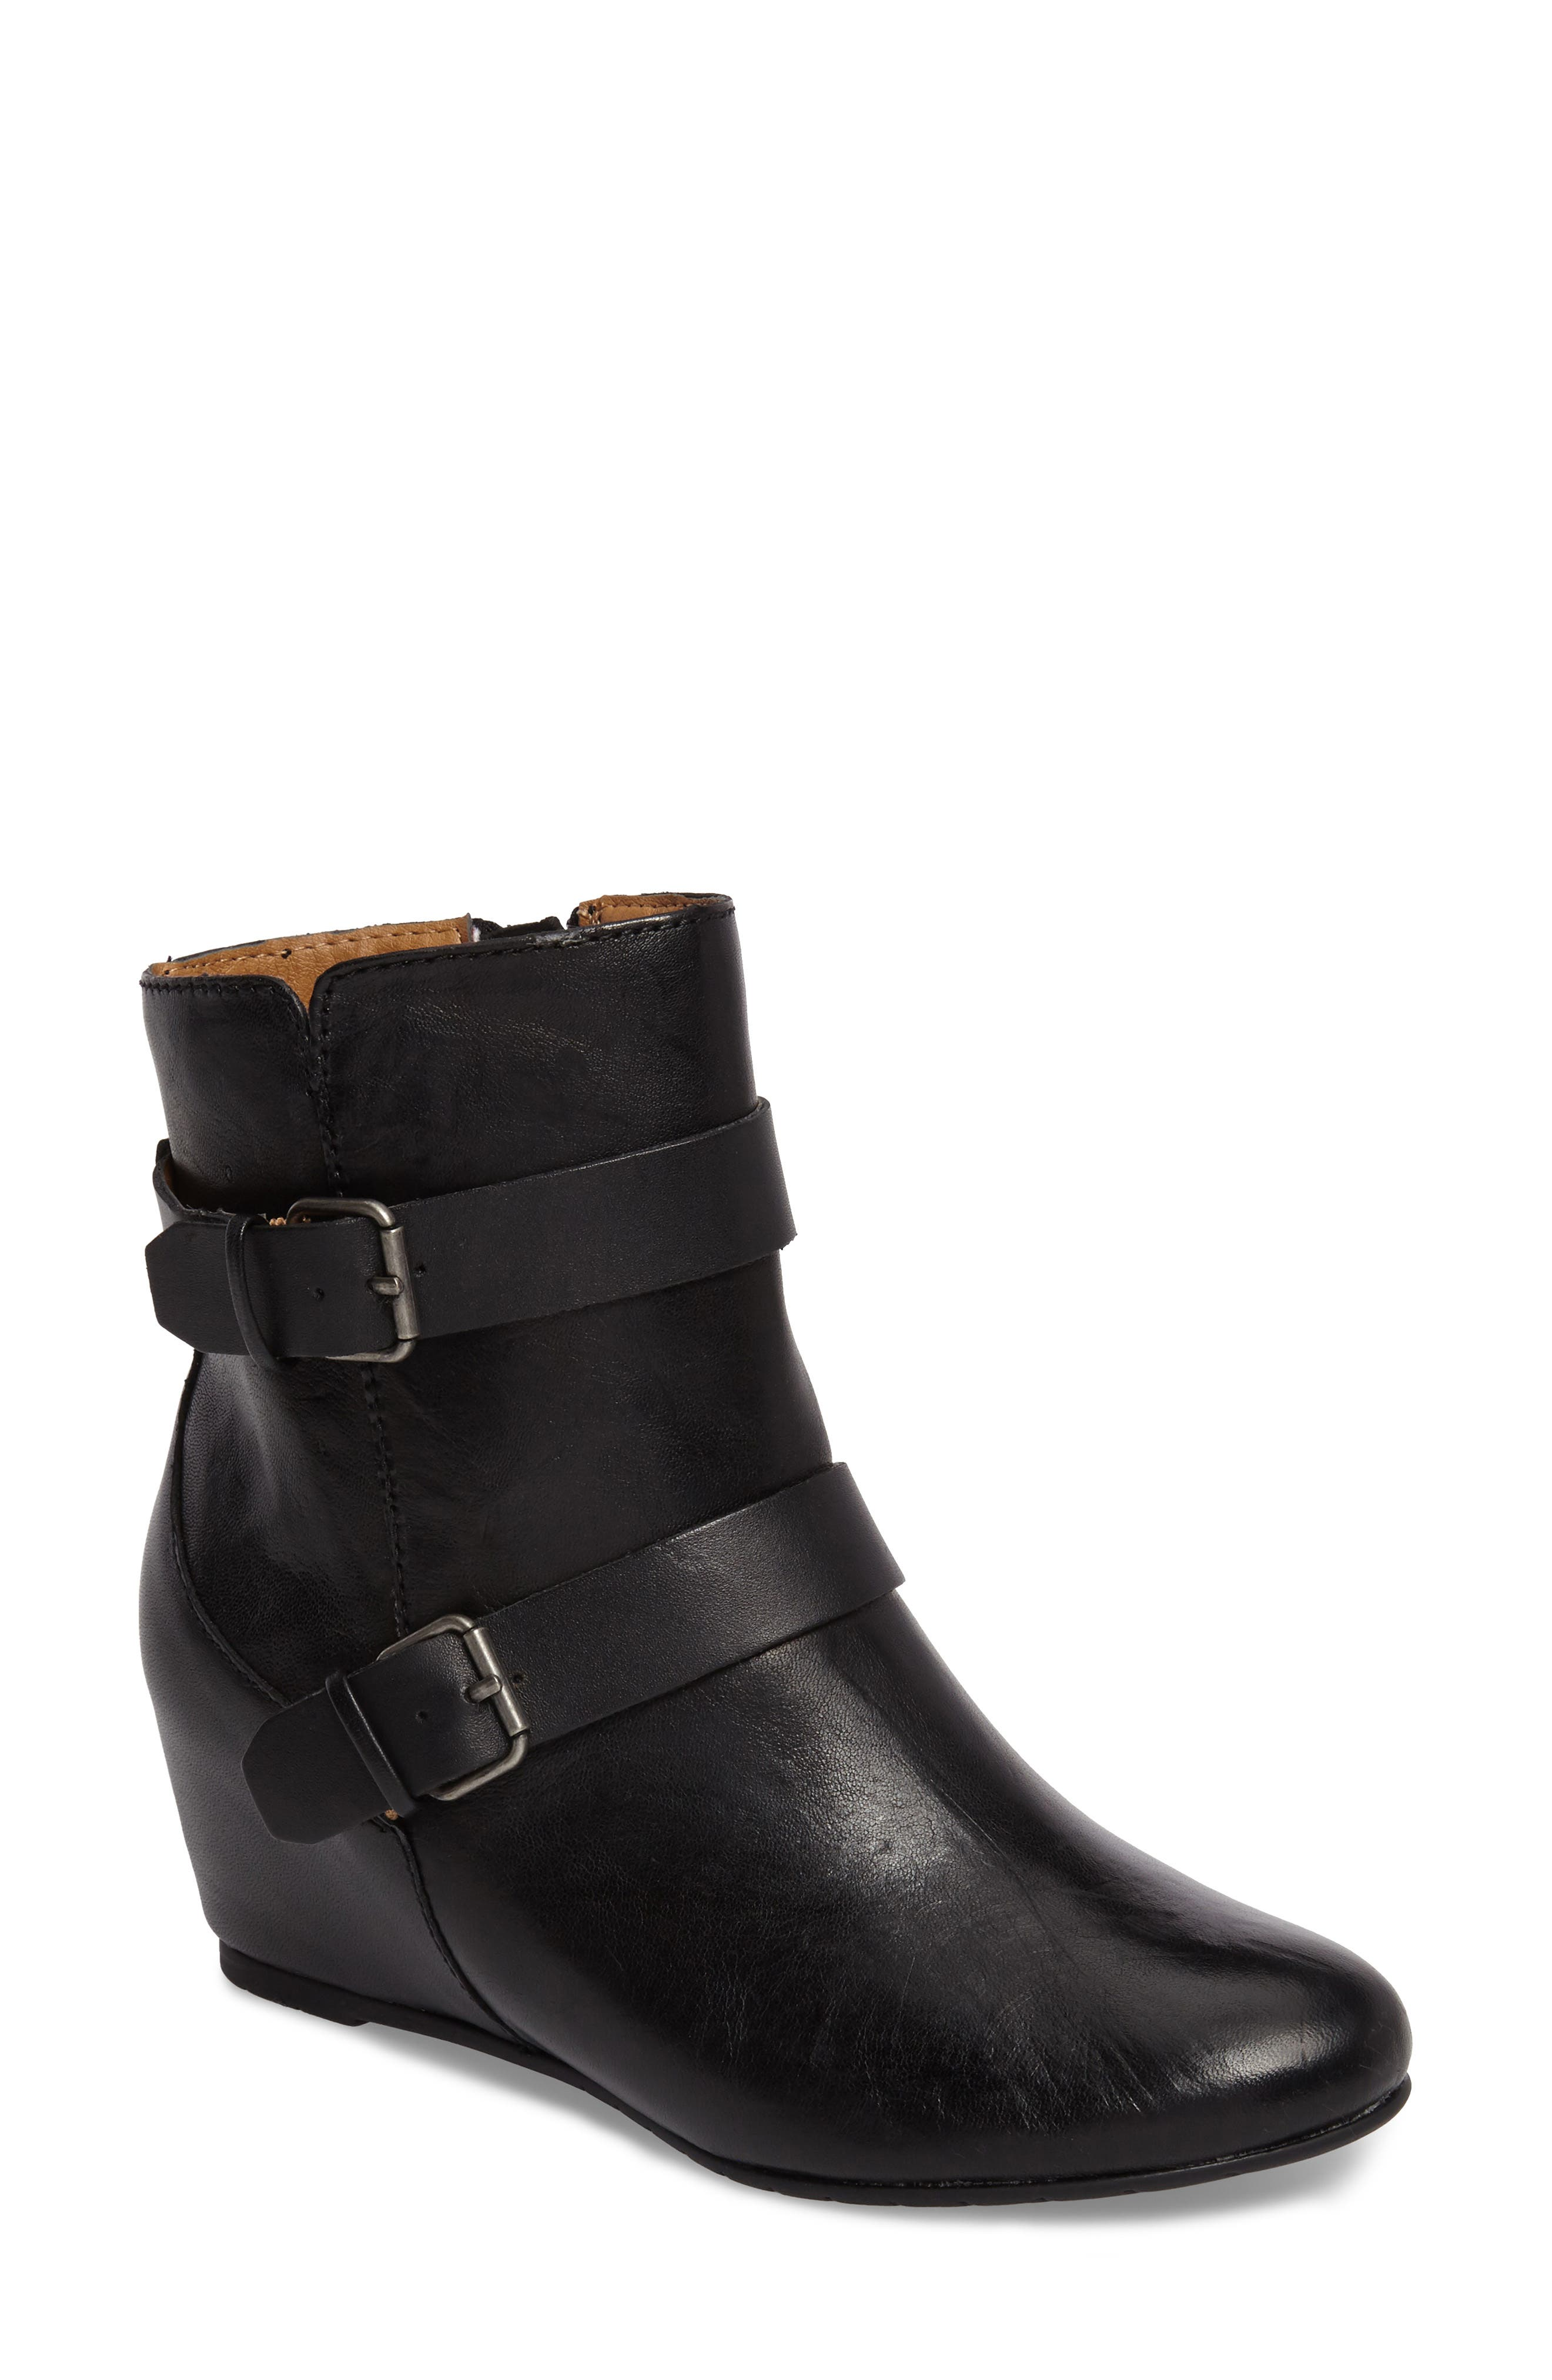 Ramika Wedge Bootie,                         Main,                         color, 001